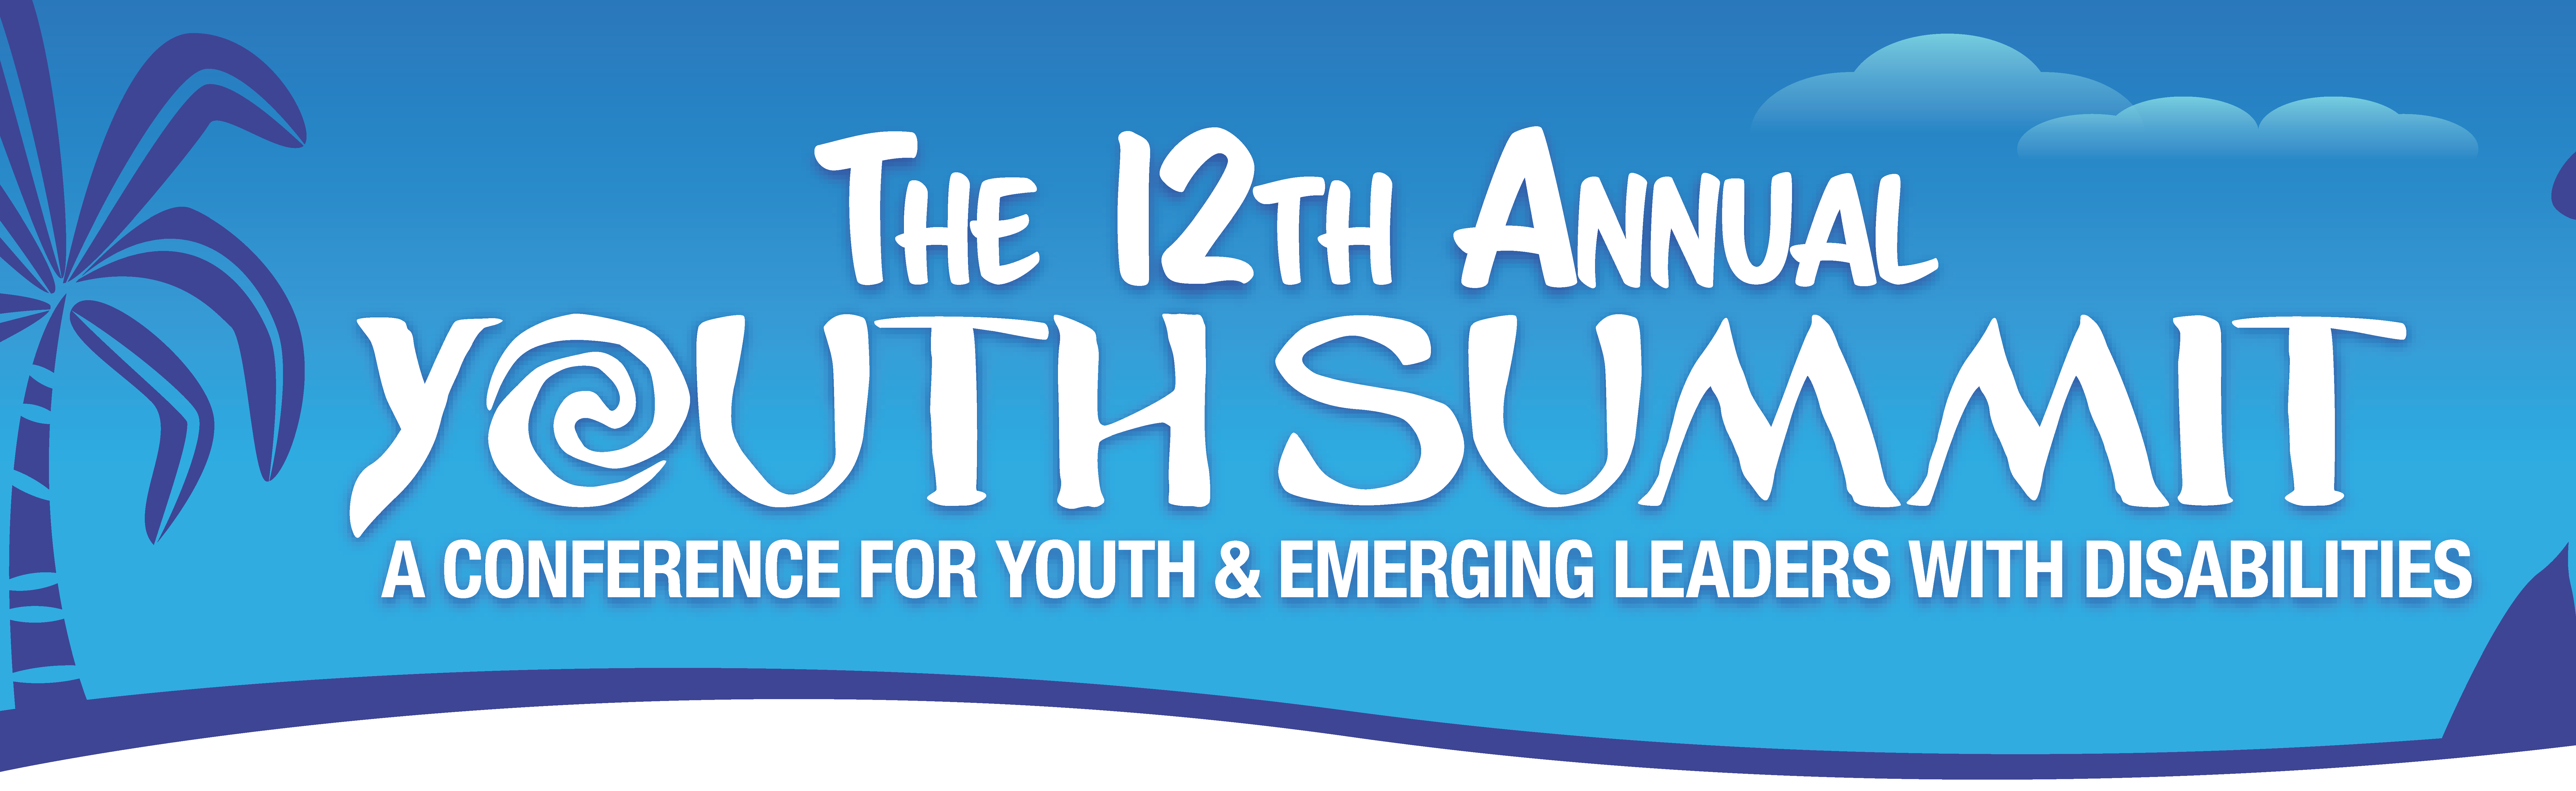 The 12th Annual Youth Summit